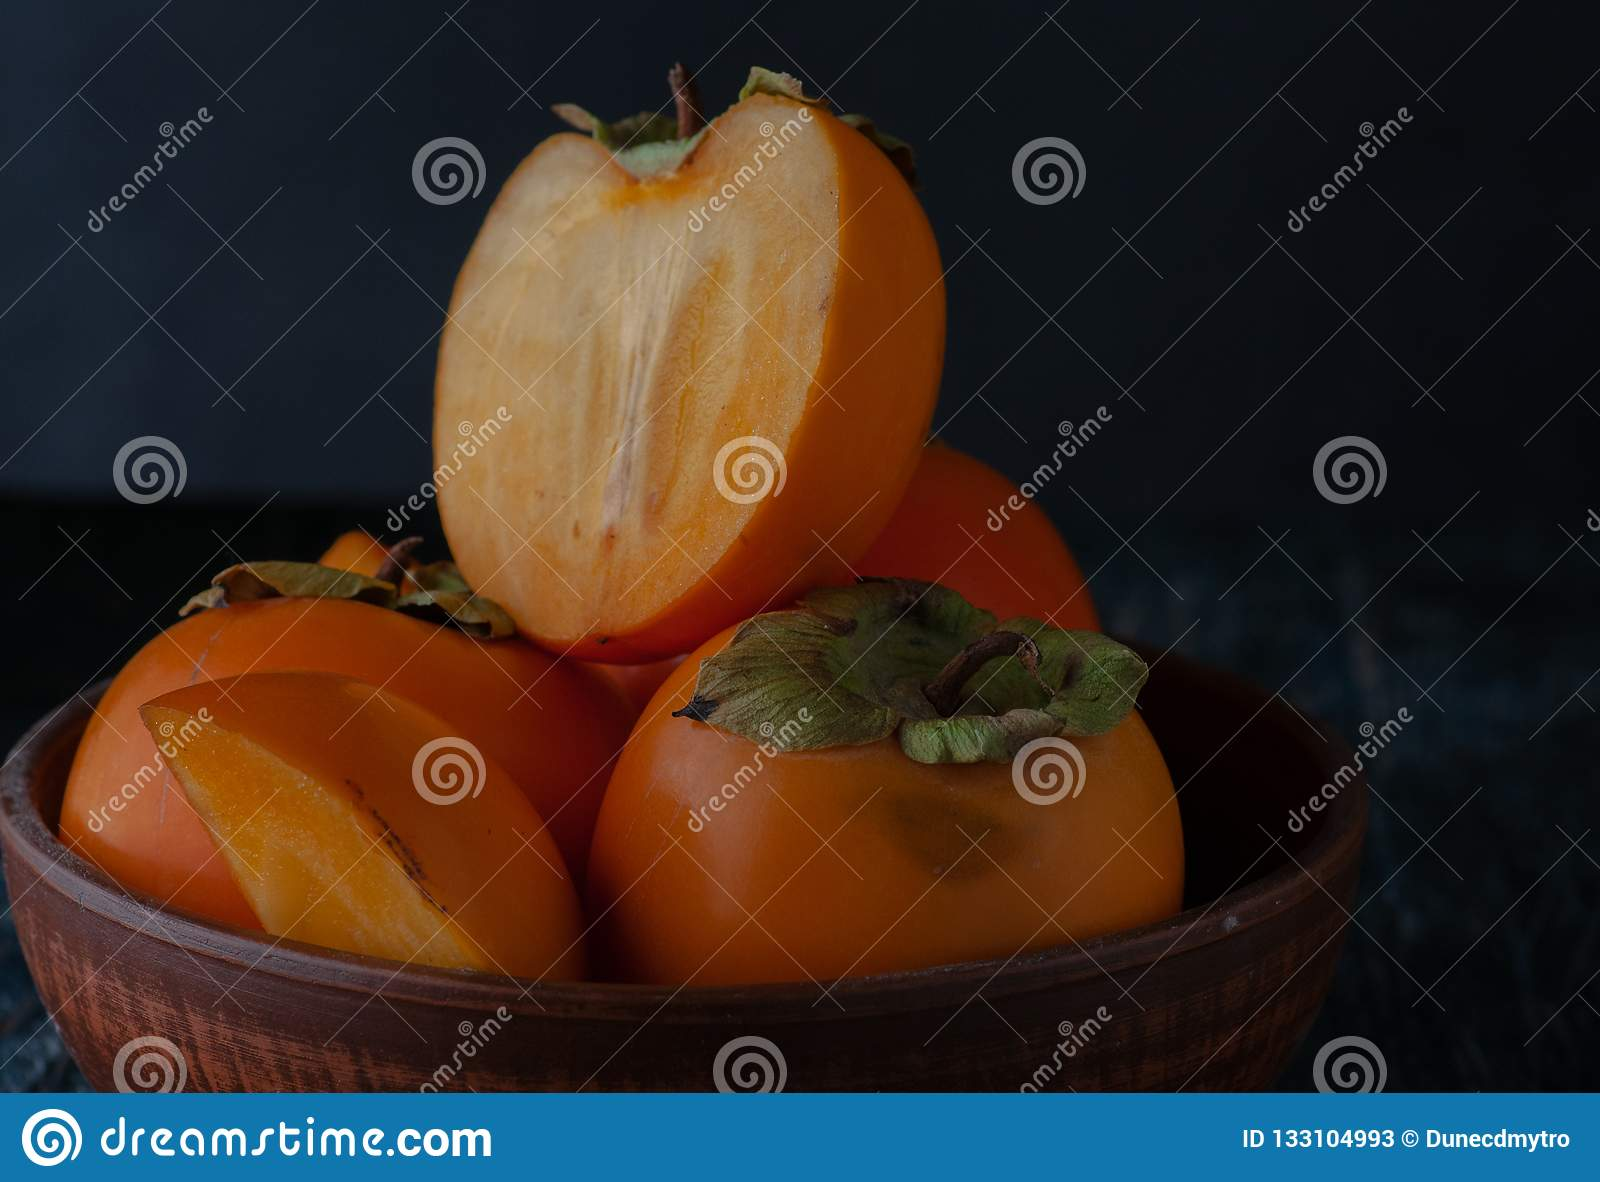 Still life with persimmon on a plate on a dark background.